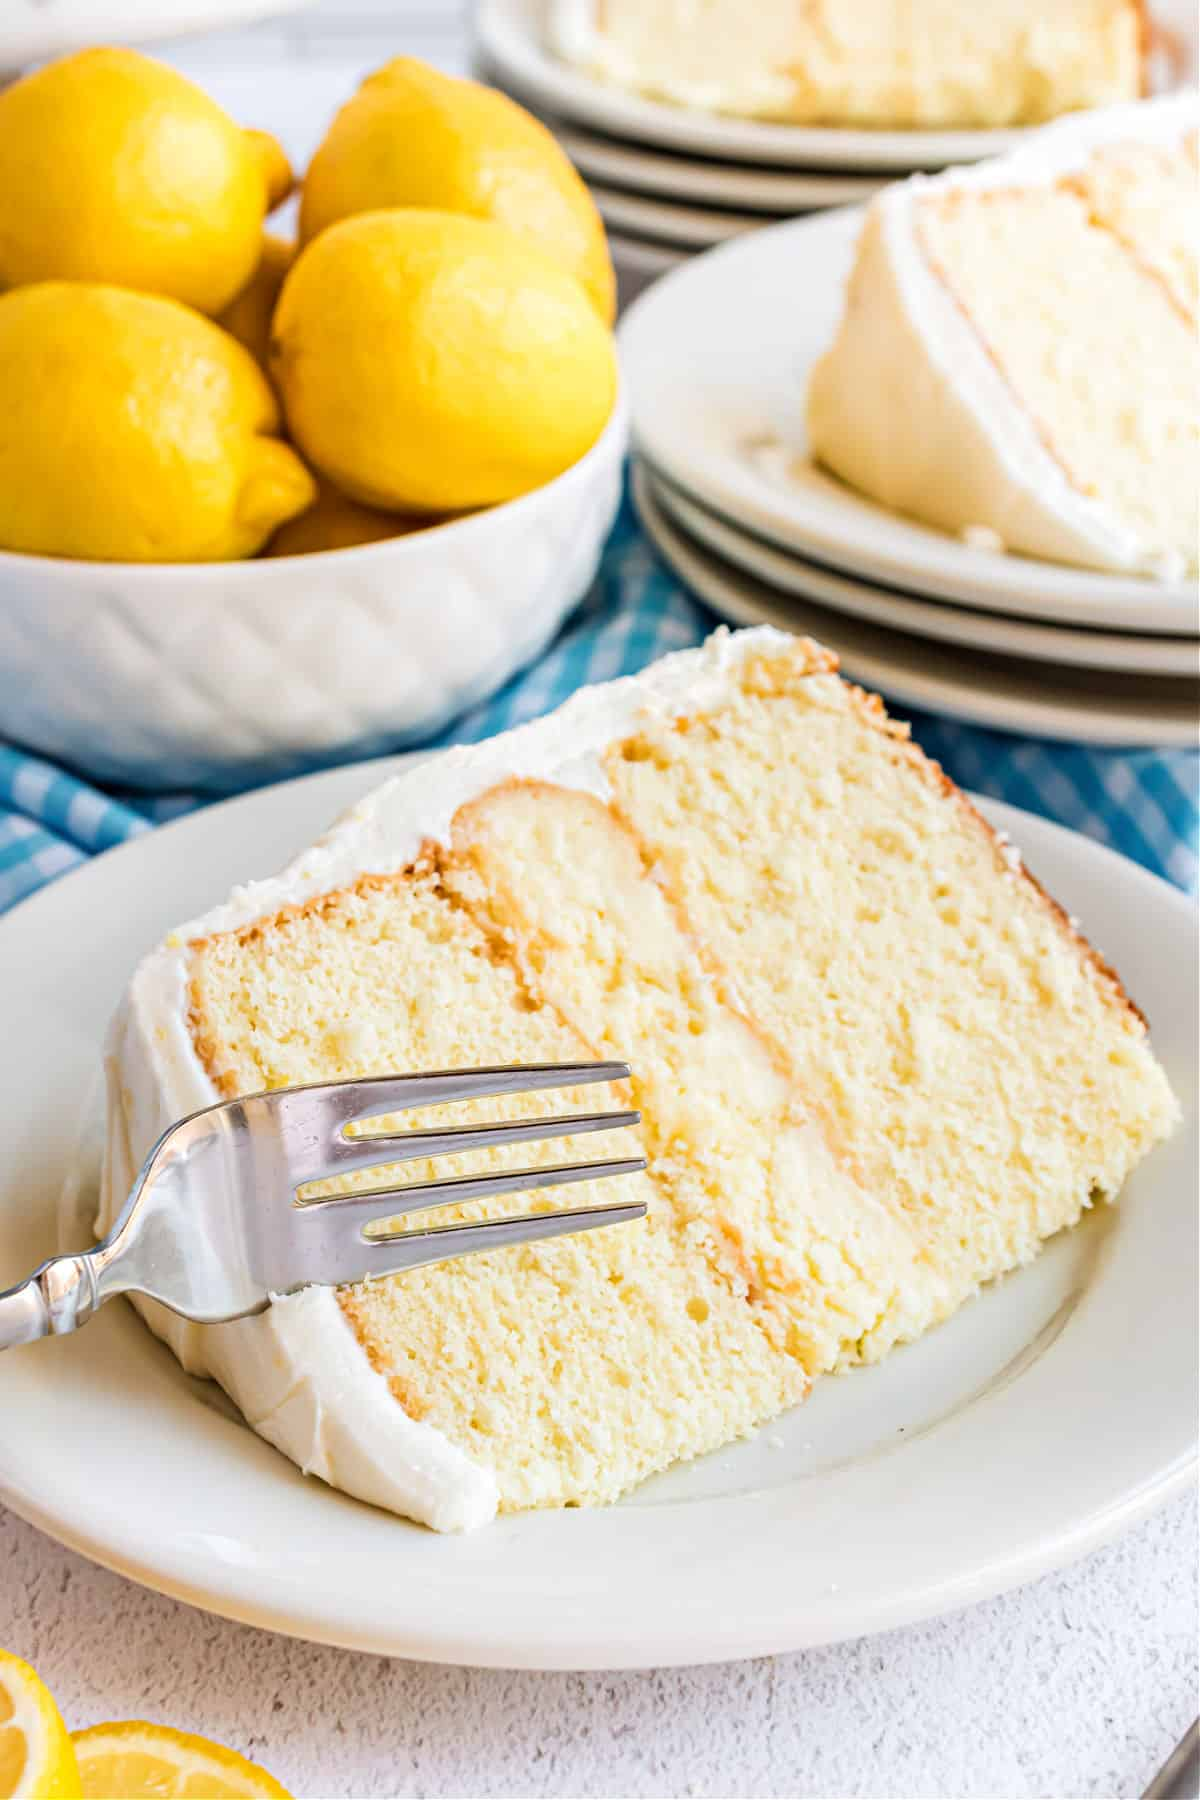 Slice of lemon cheesecake cake on a white plate with a fork.